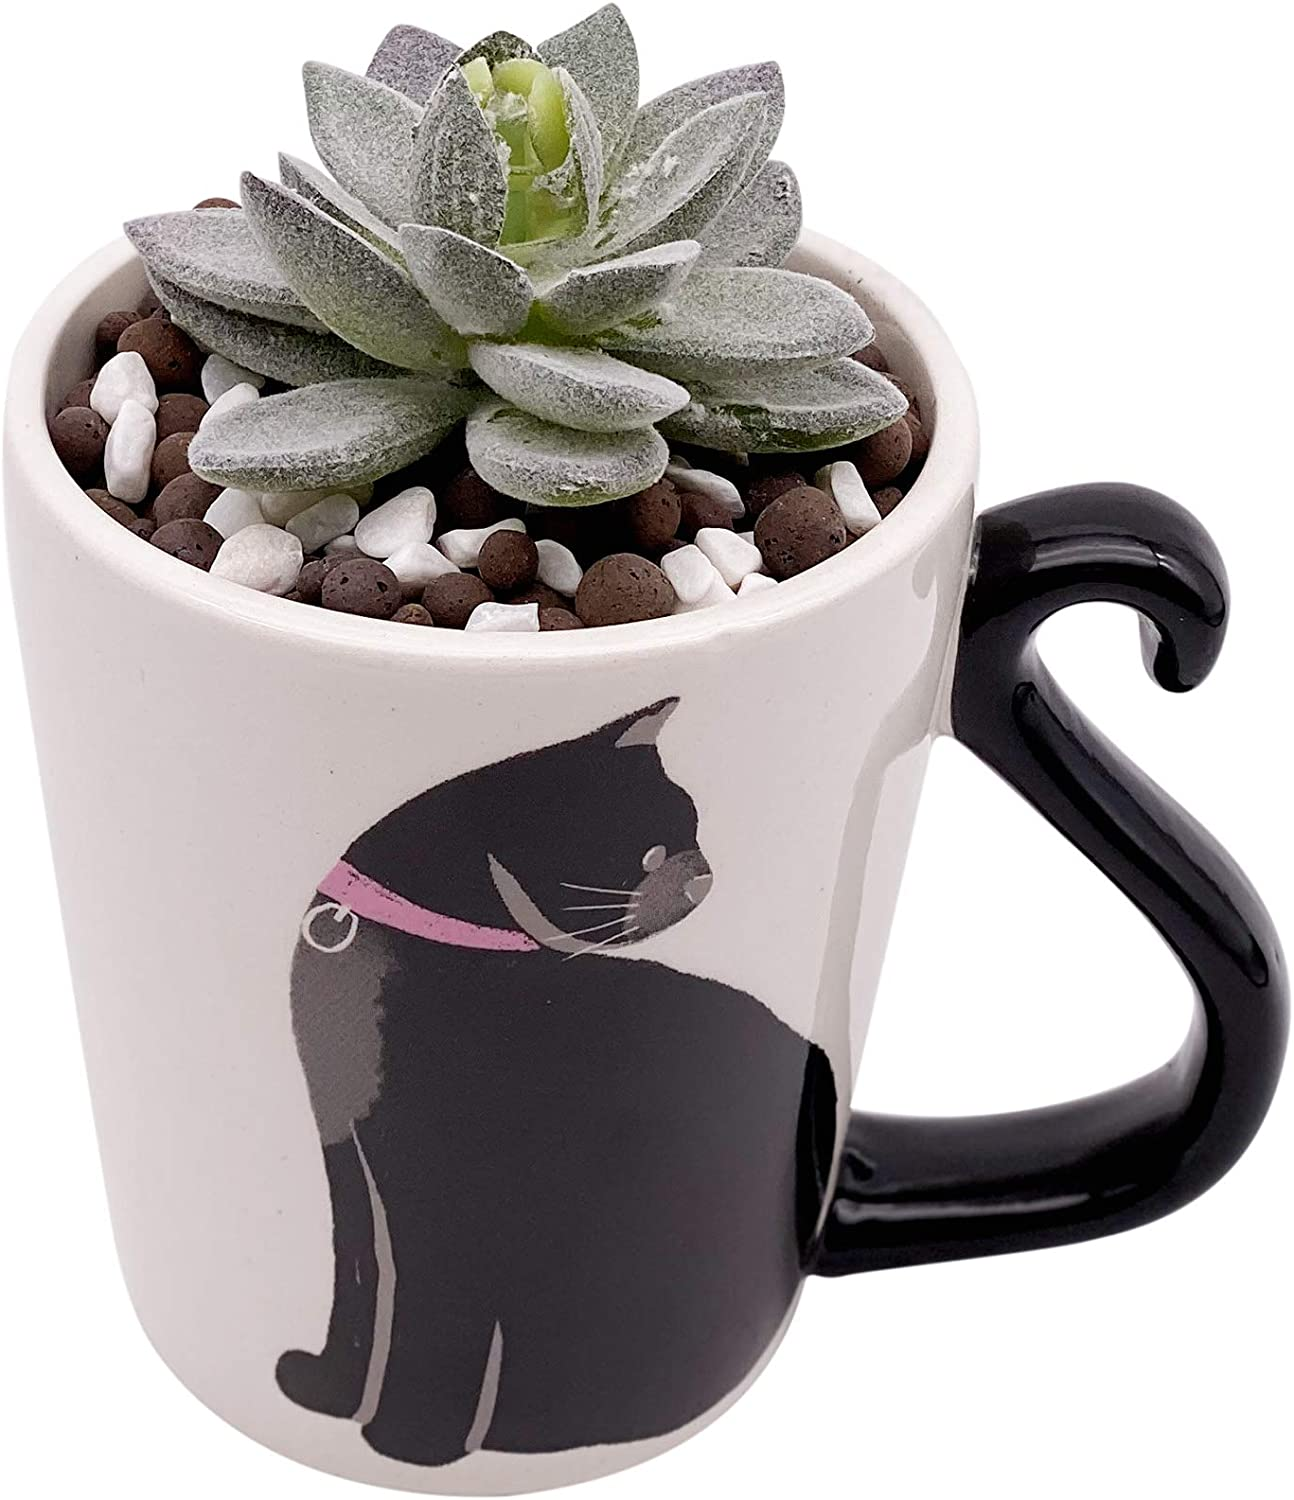 DIY Artificial Succulent with Planter Pot and Ceramsite - Cute Ceramic Animal Cat Planter Pot- Home Office Decoration Gift(5.94.92 inch)